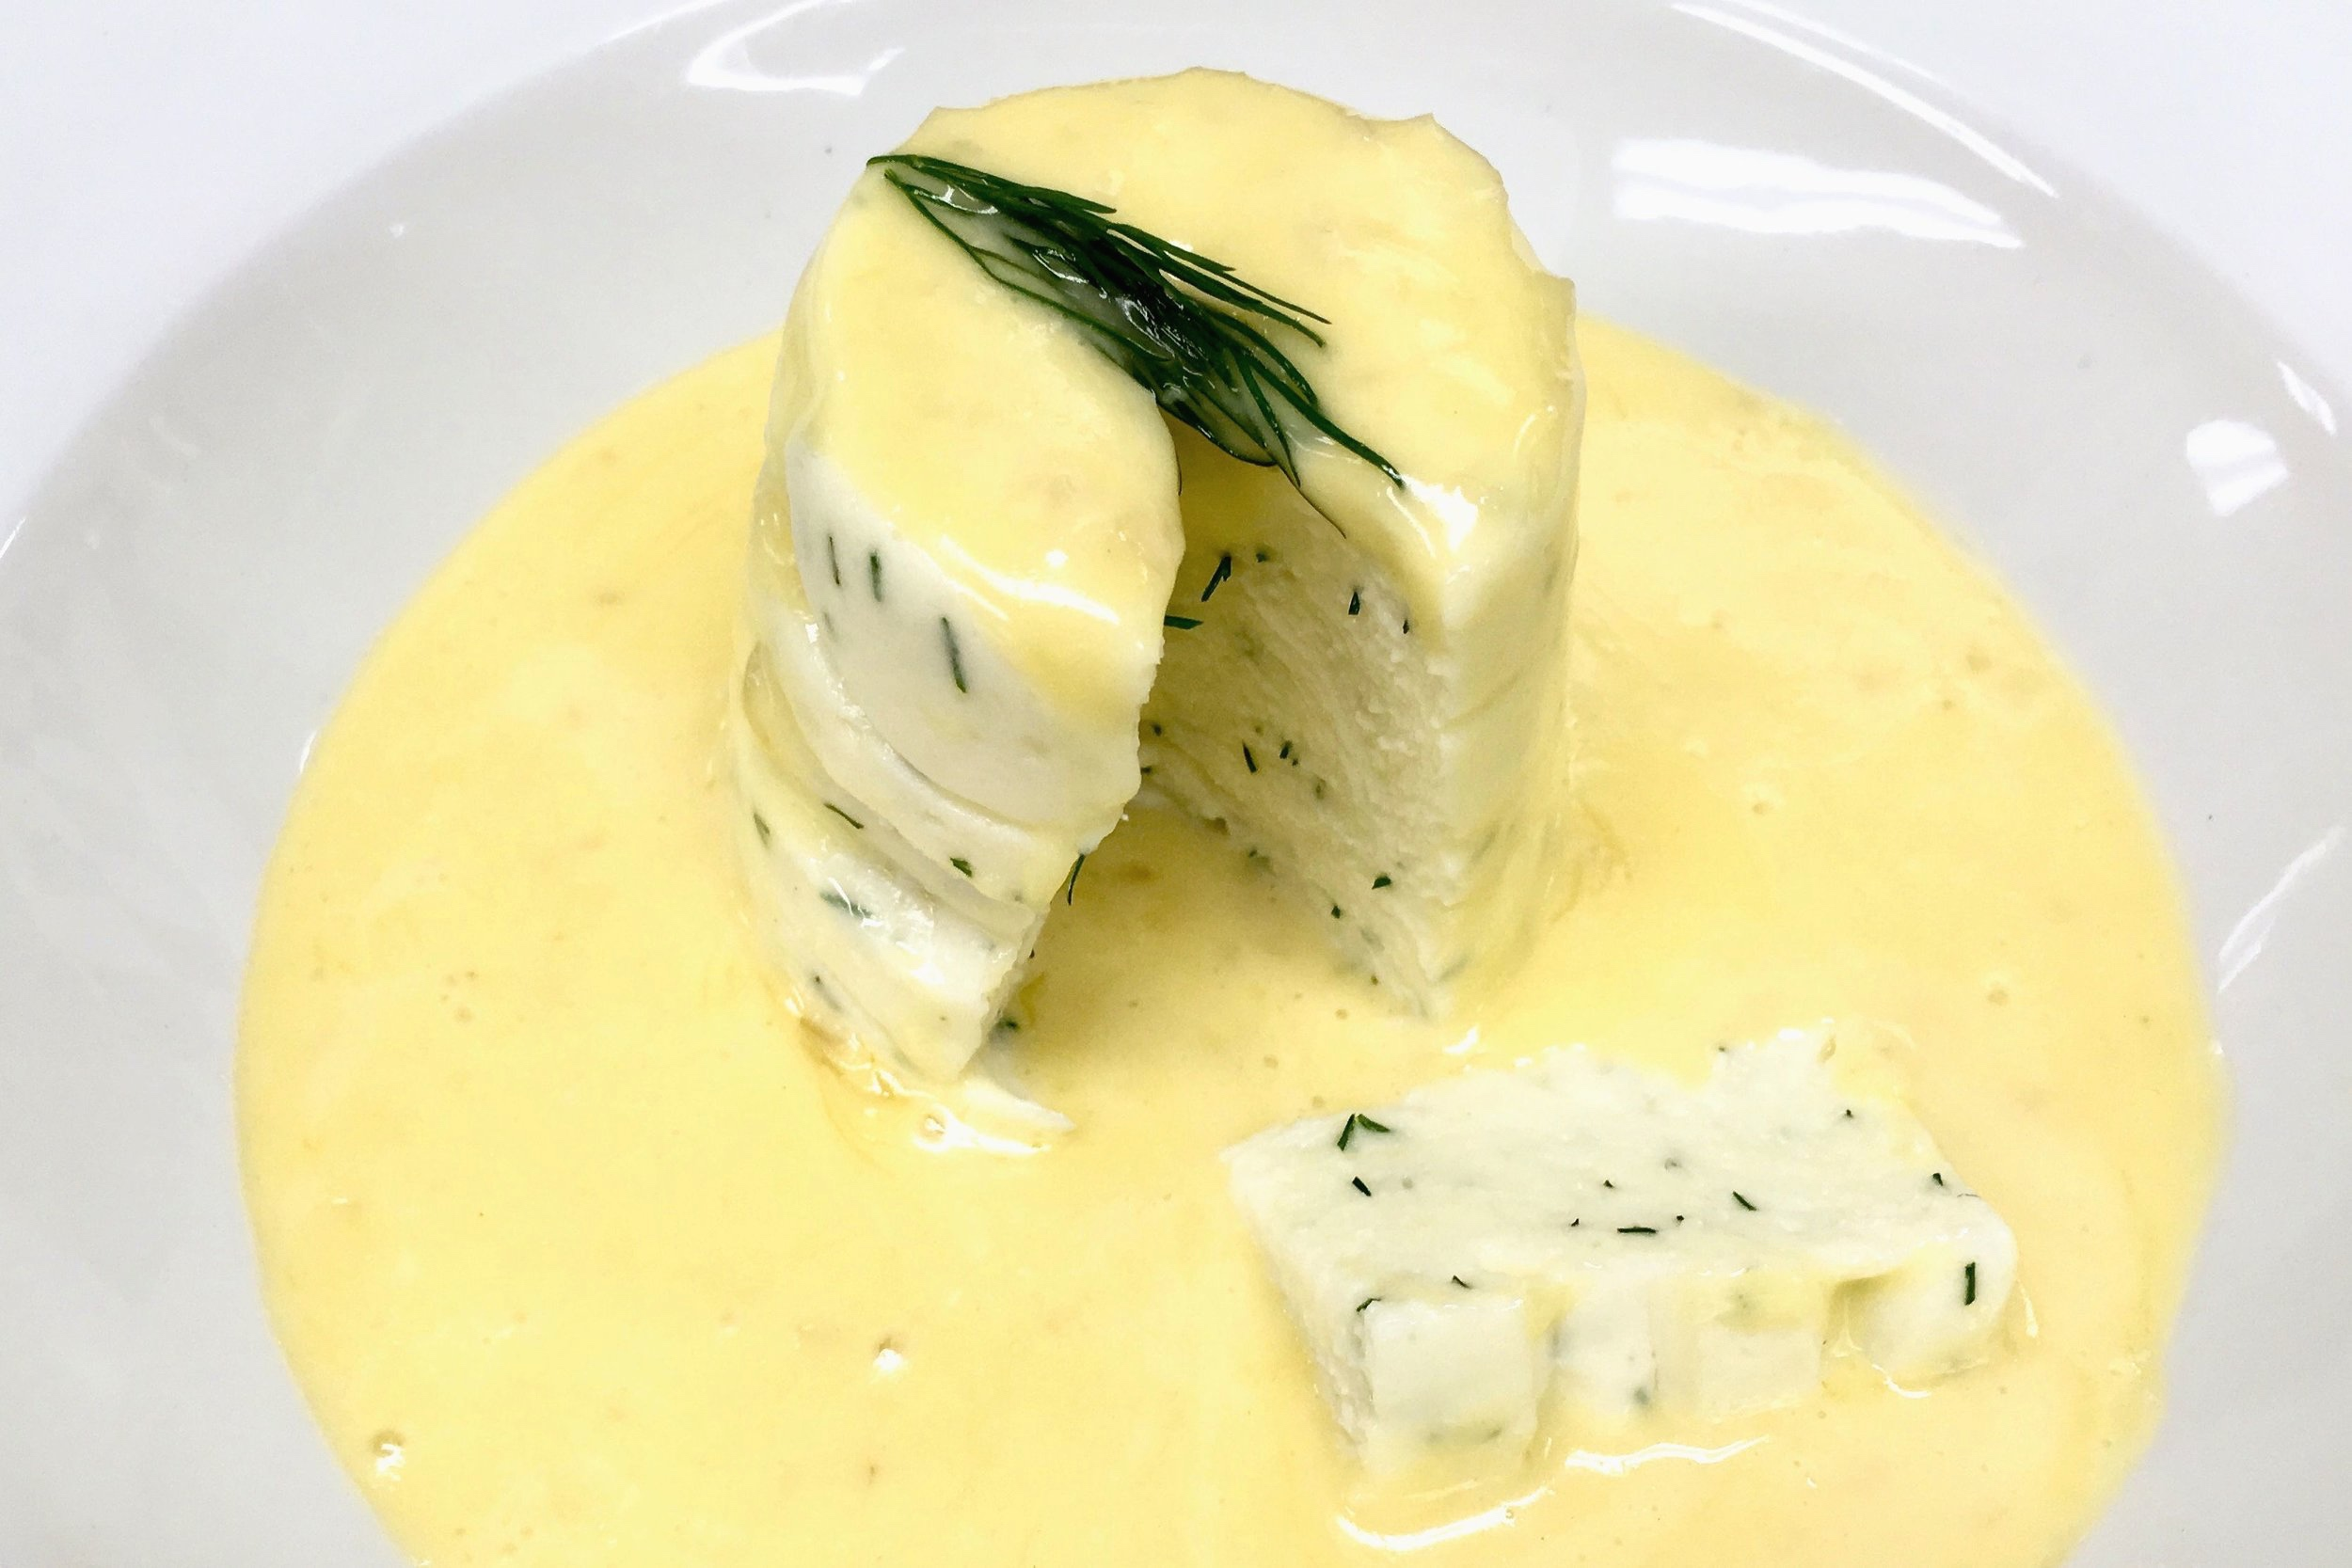 My attempt at a warm plaice mousse with dill and white wine sauce